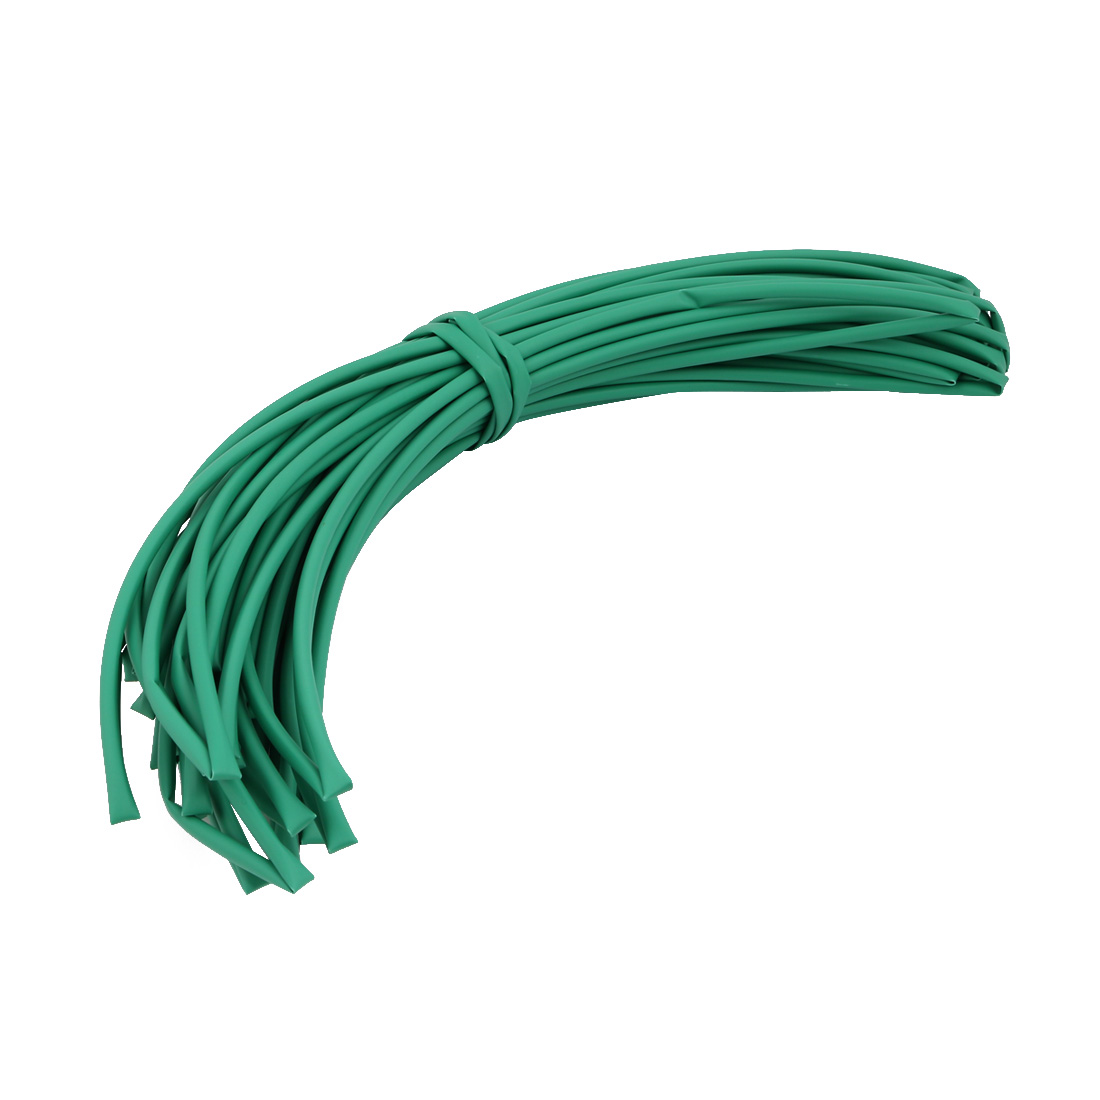 25M 0.2in Inner Dia Polyolefin Flame Retardant Tube Green for Wire Repairing